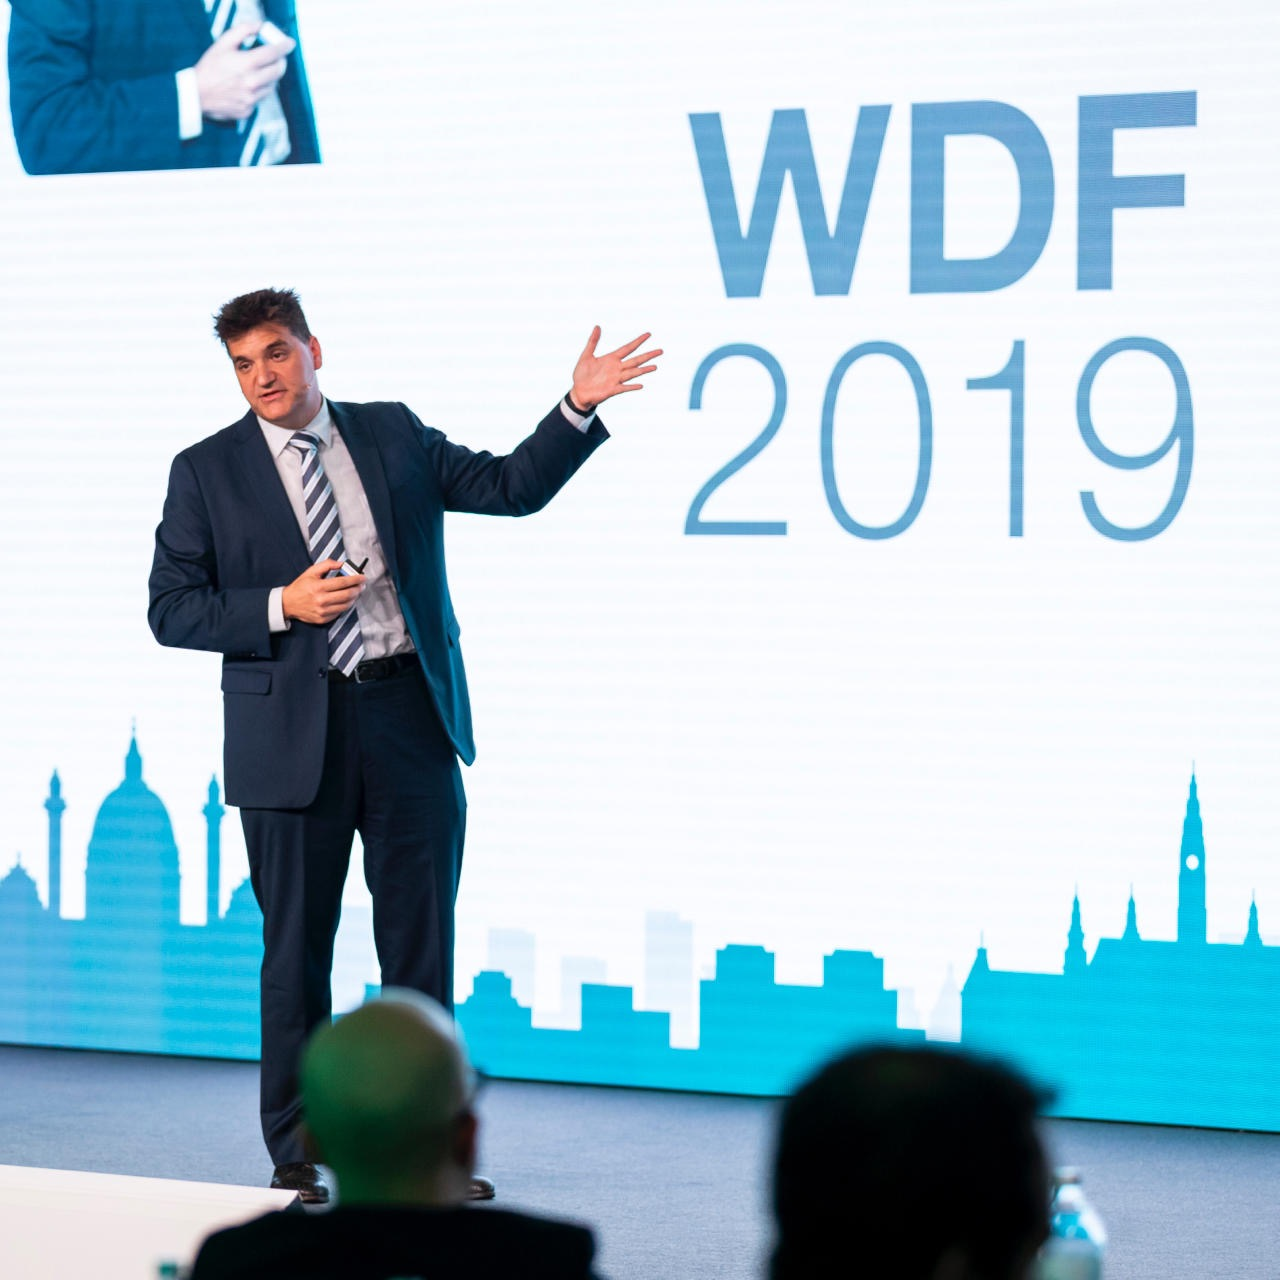 Michael Weilguny als Keynote Speaker am Wheel Detection Forum 2019